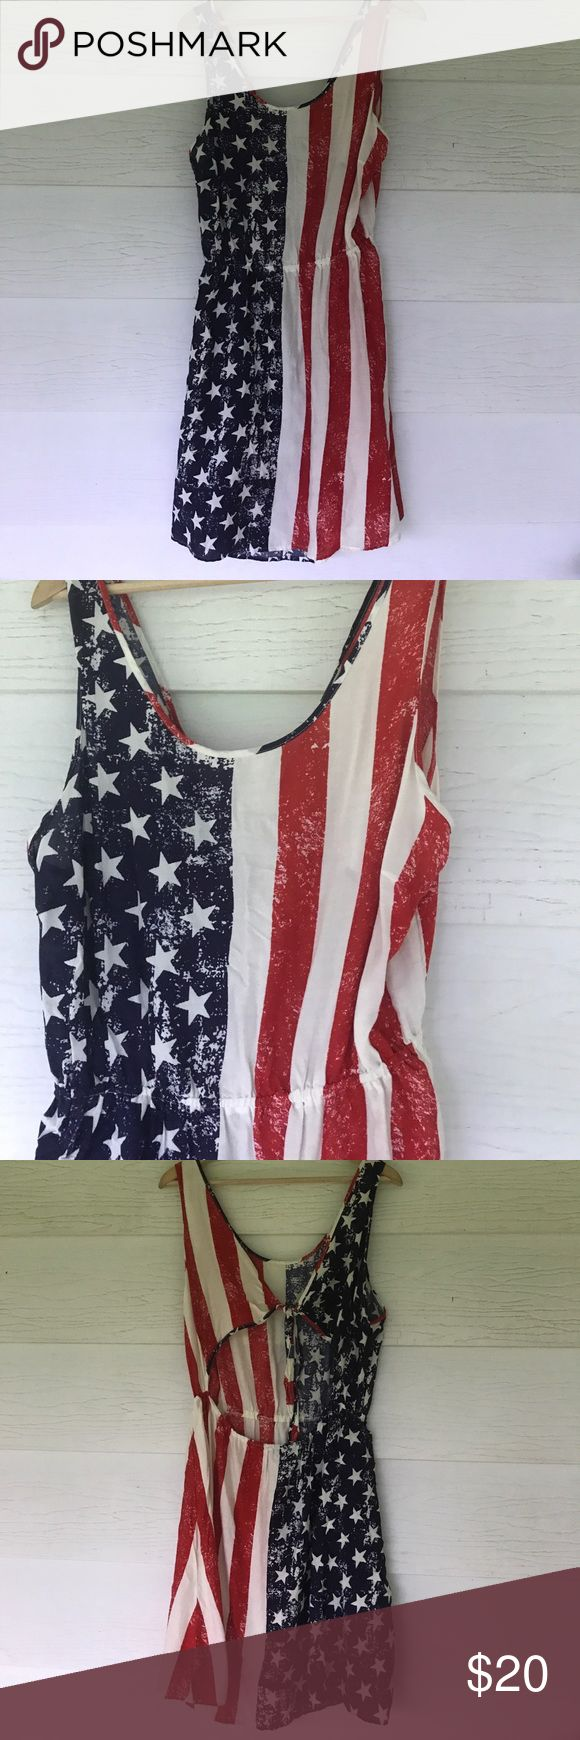 American flag dress Sleeveless. Back is out. American flag dress. 22 bust 39 length. All measurements are approximate. Super cute Rue 21 Dresses